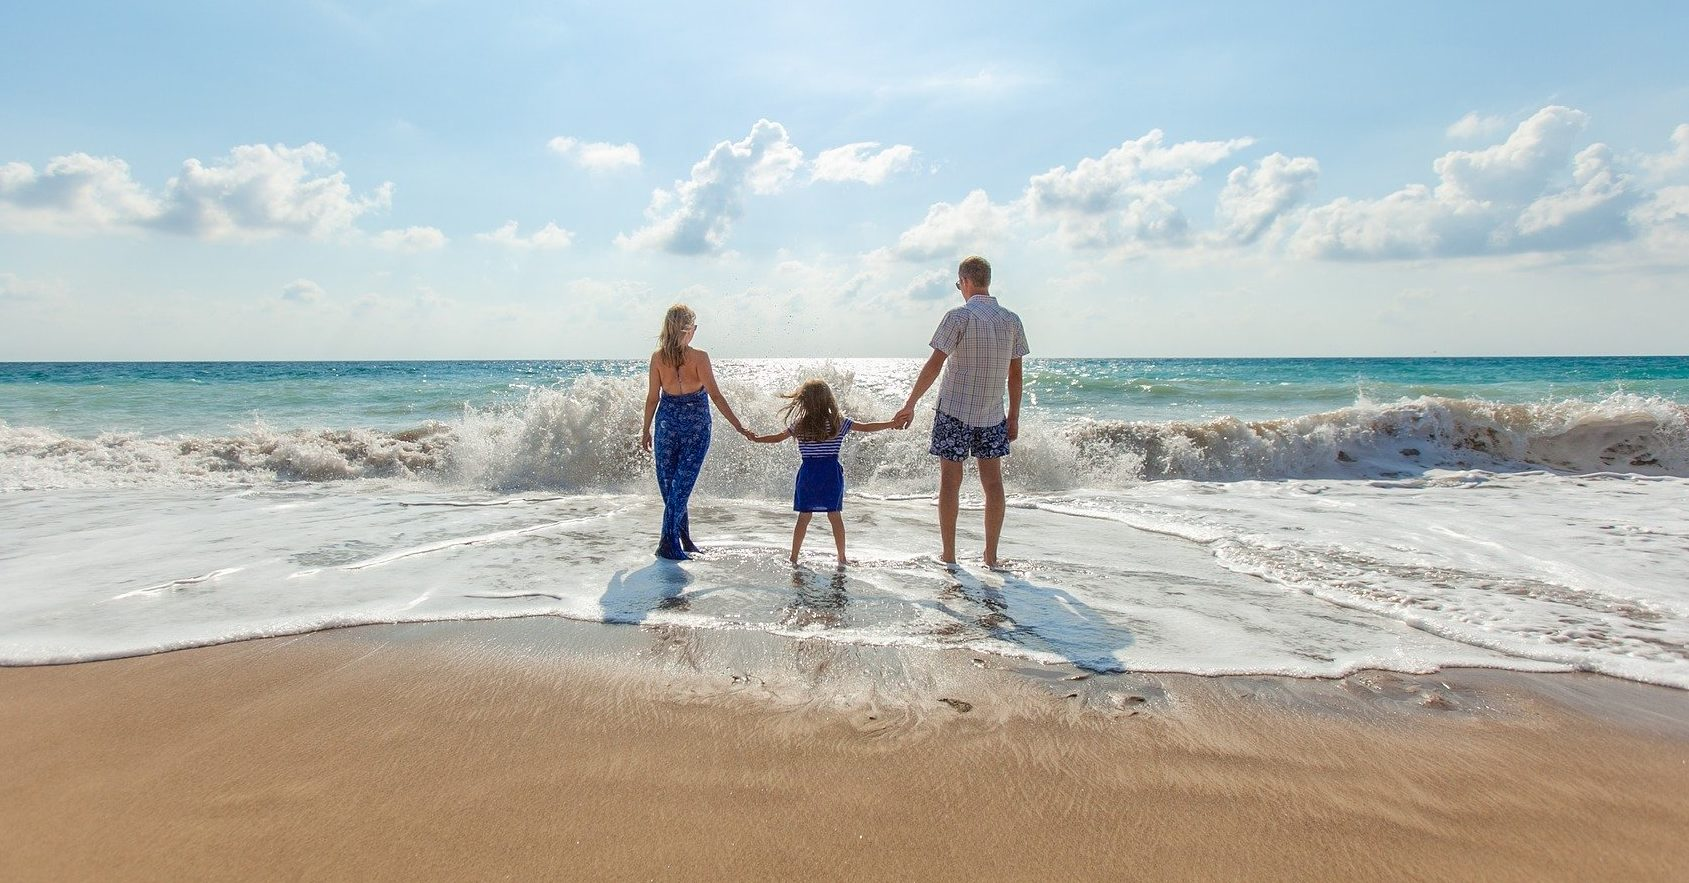 Government offers renewed hope for Brits looking to jet off on summer holidays